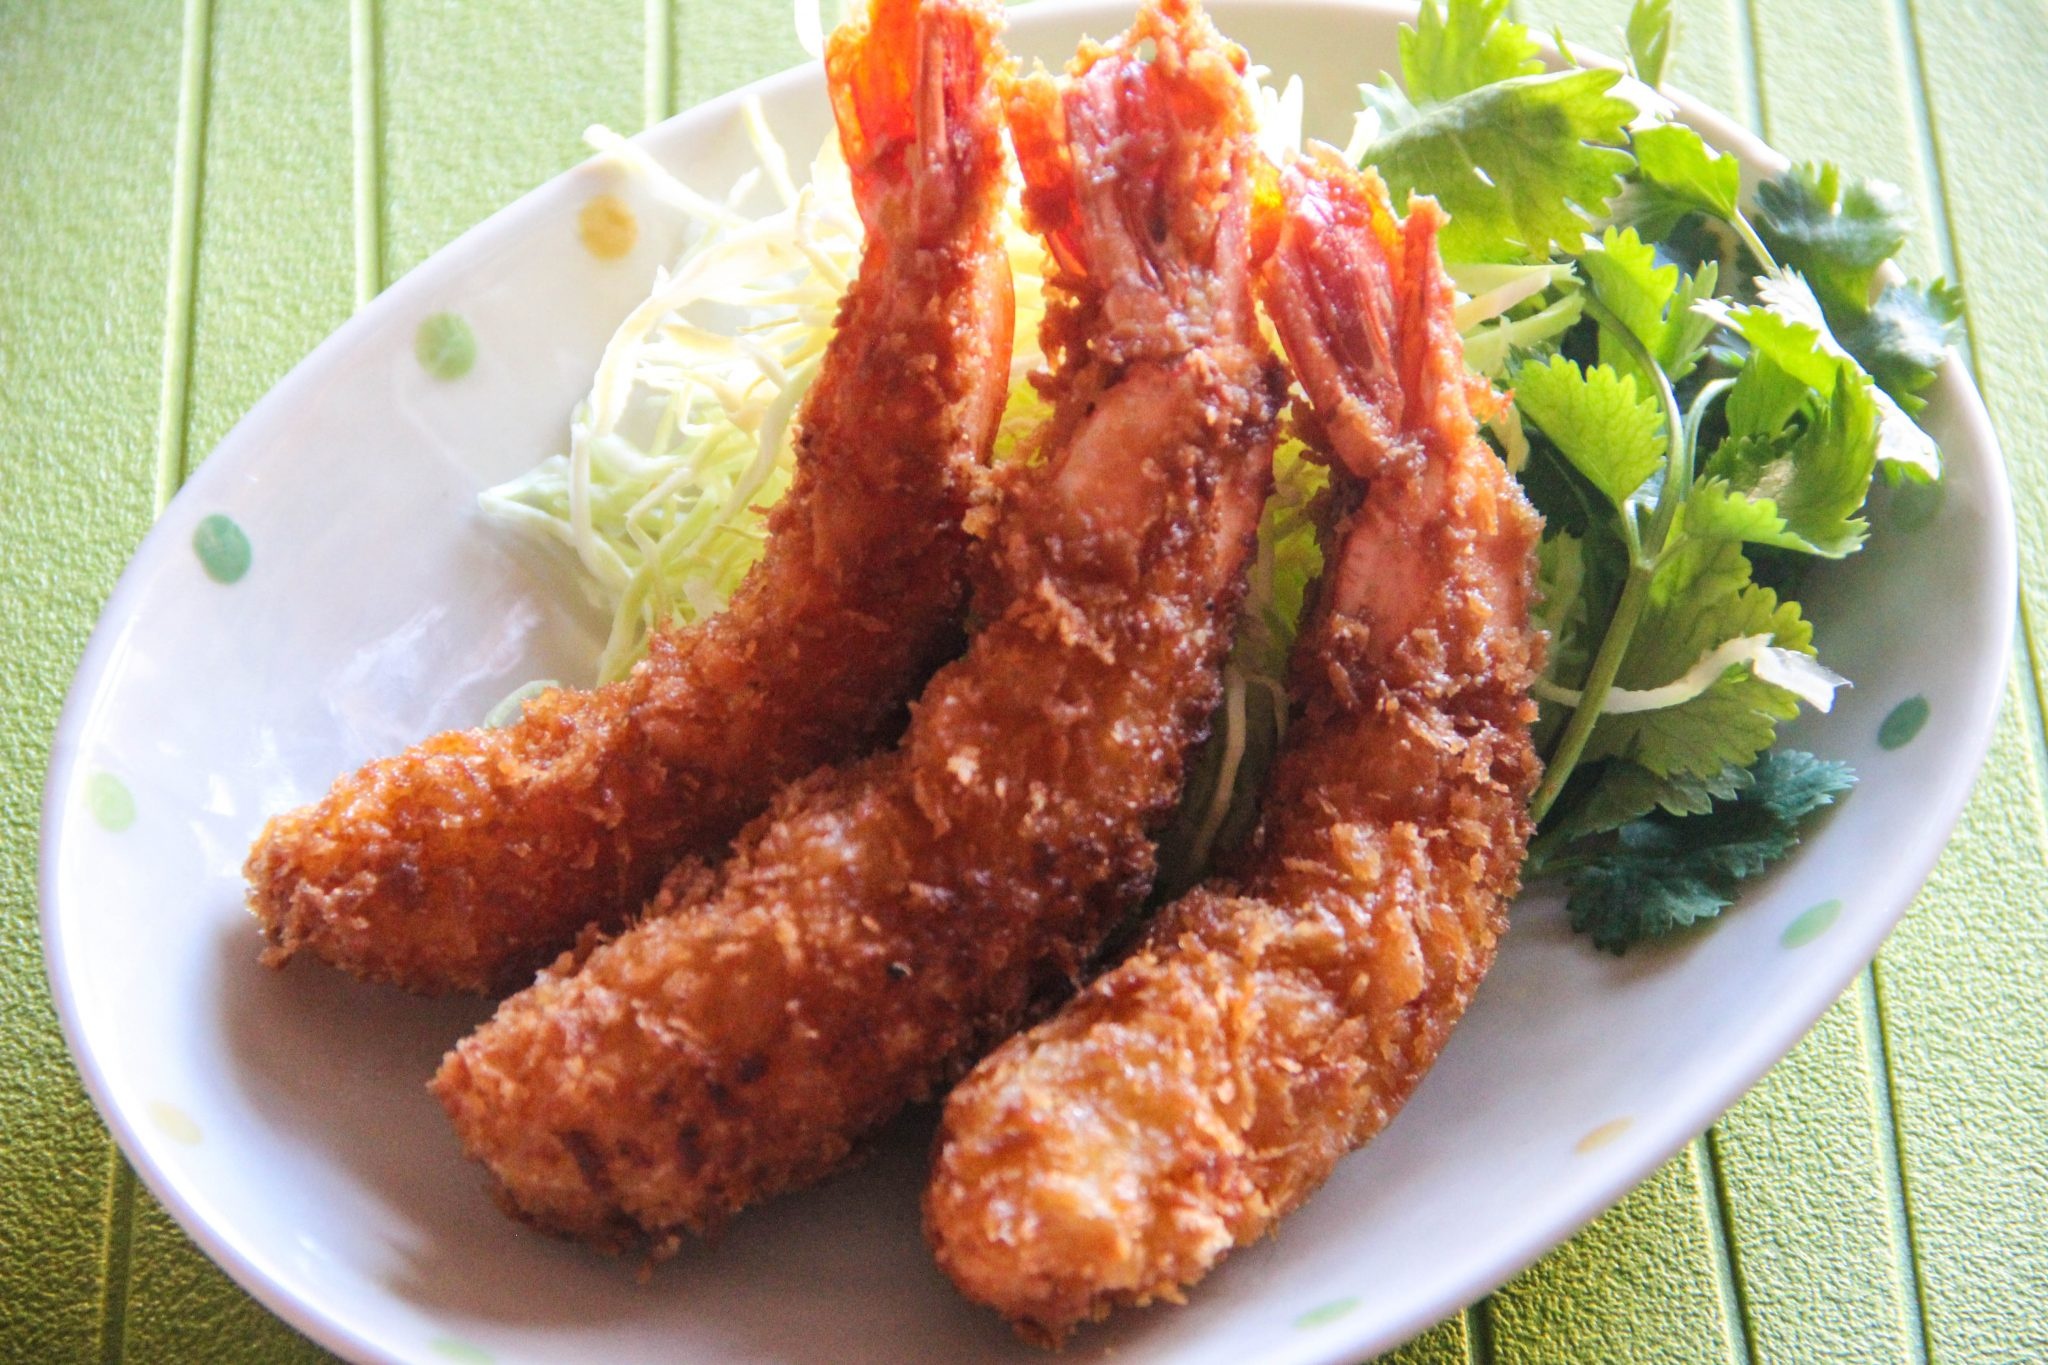 Ebi Fry (Deep fried shrimp)